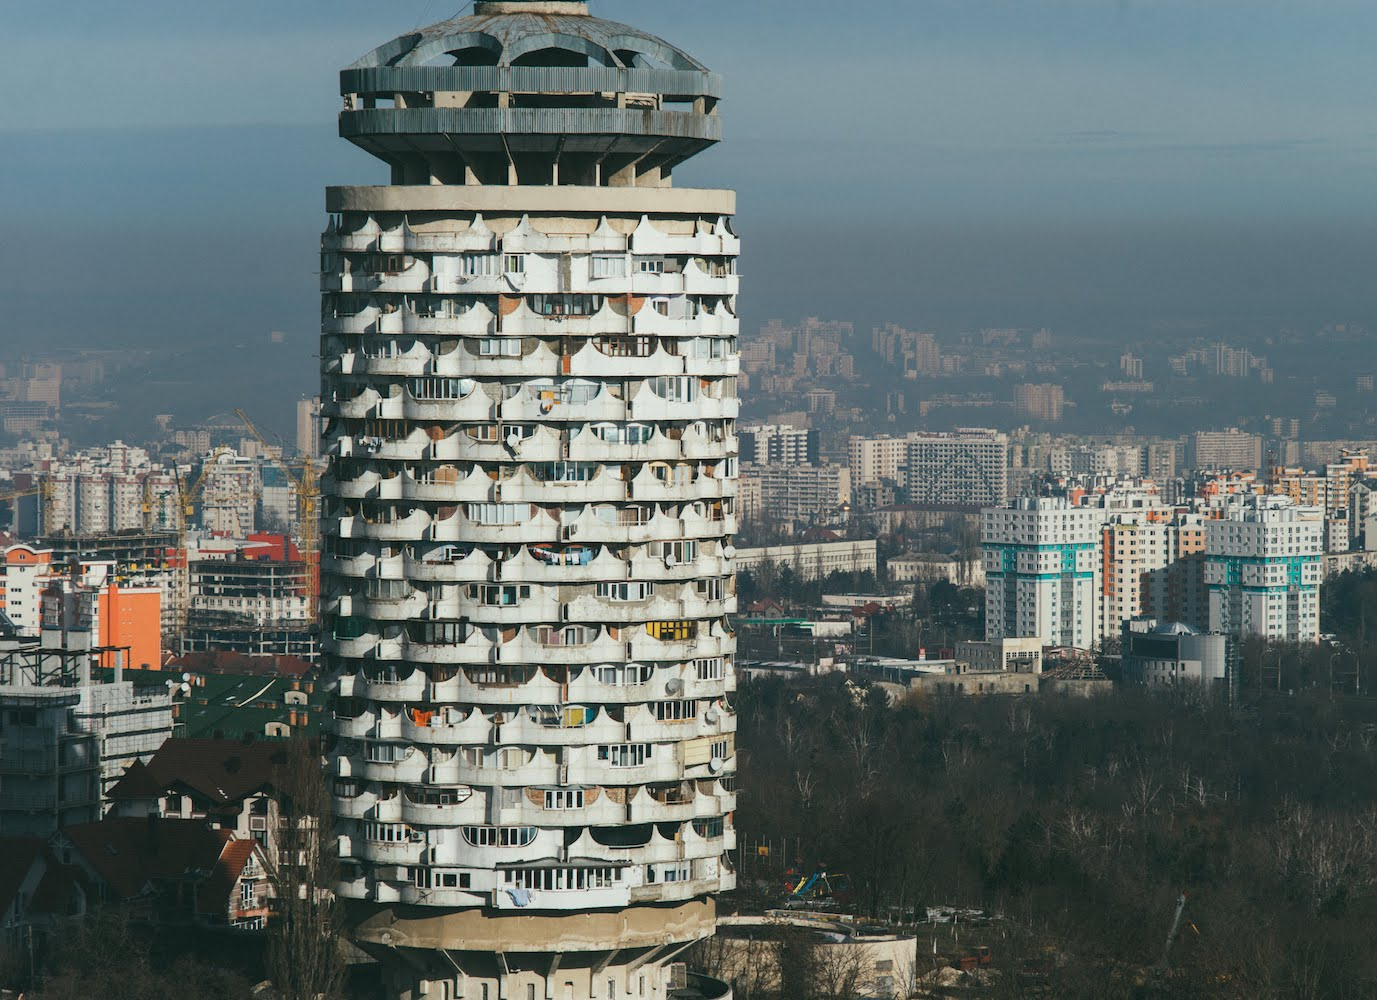 From the sarcastic to the romantic, this account takes a new look atEastern Europe's high rises